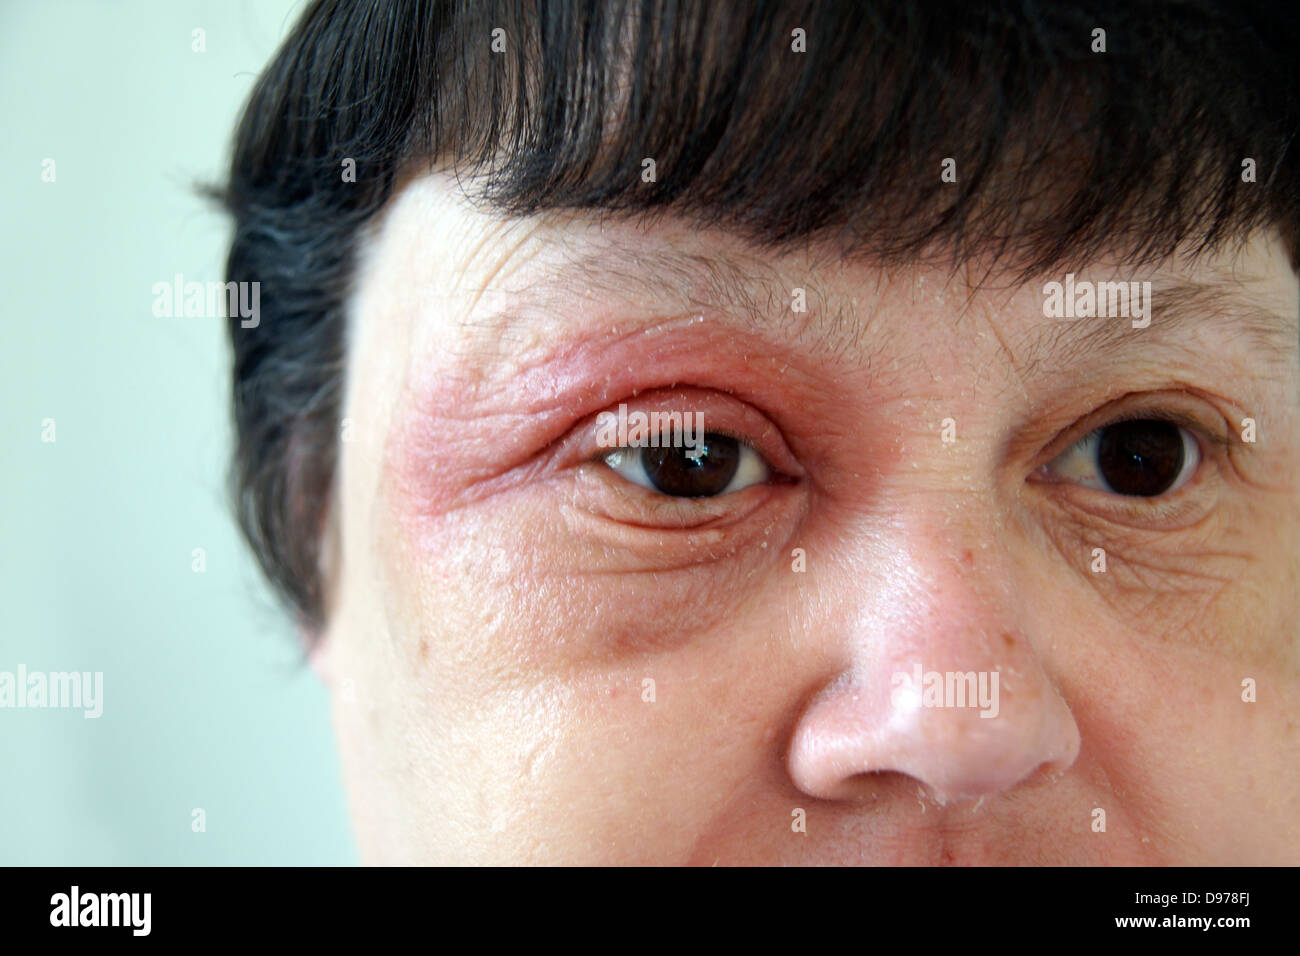 Rather valuable woman with facial rash with